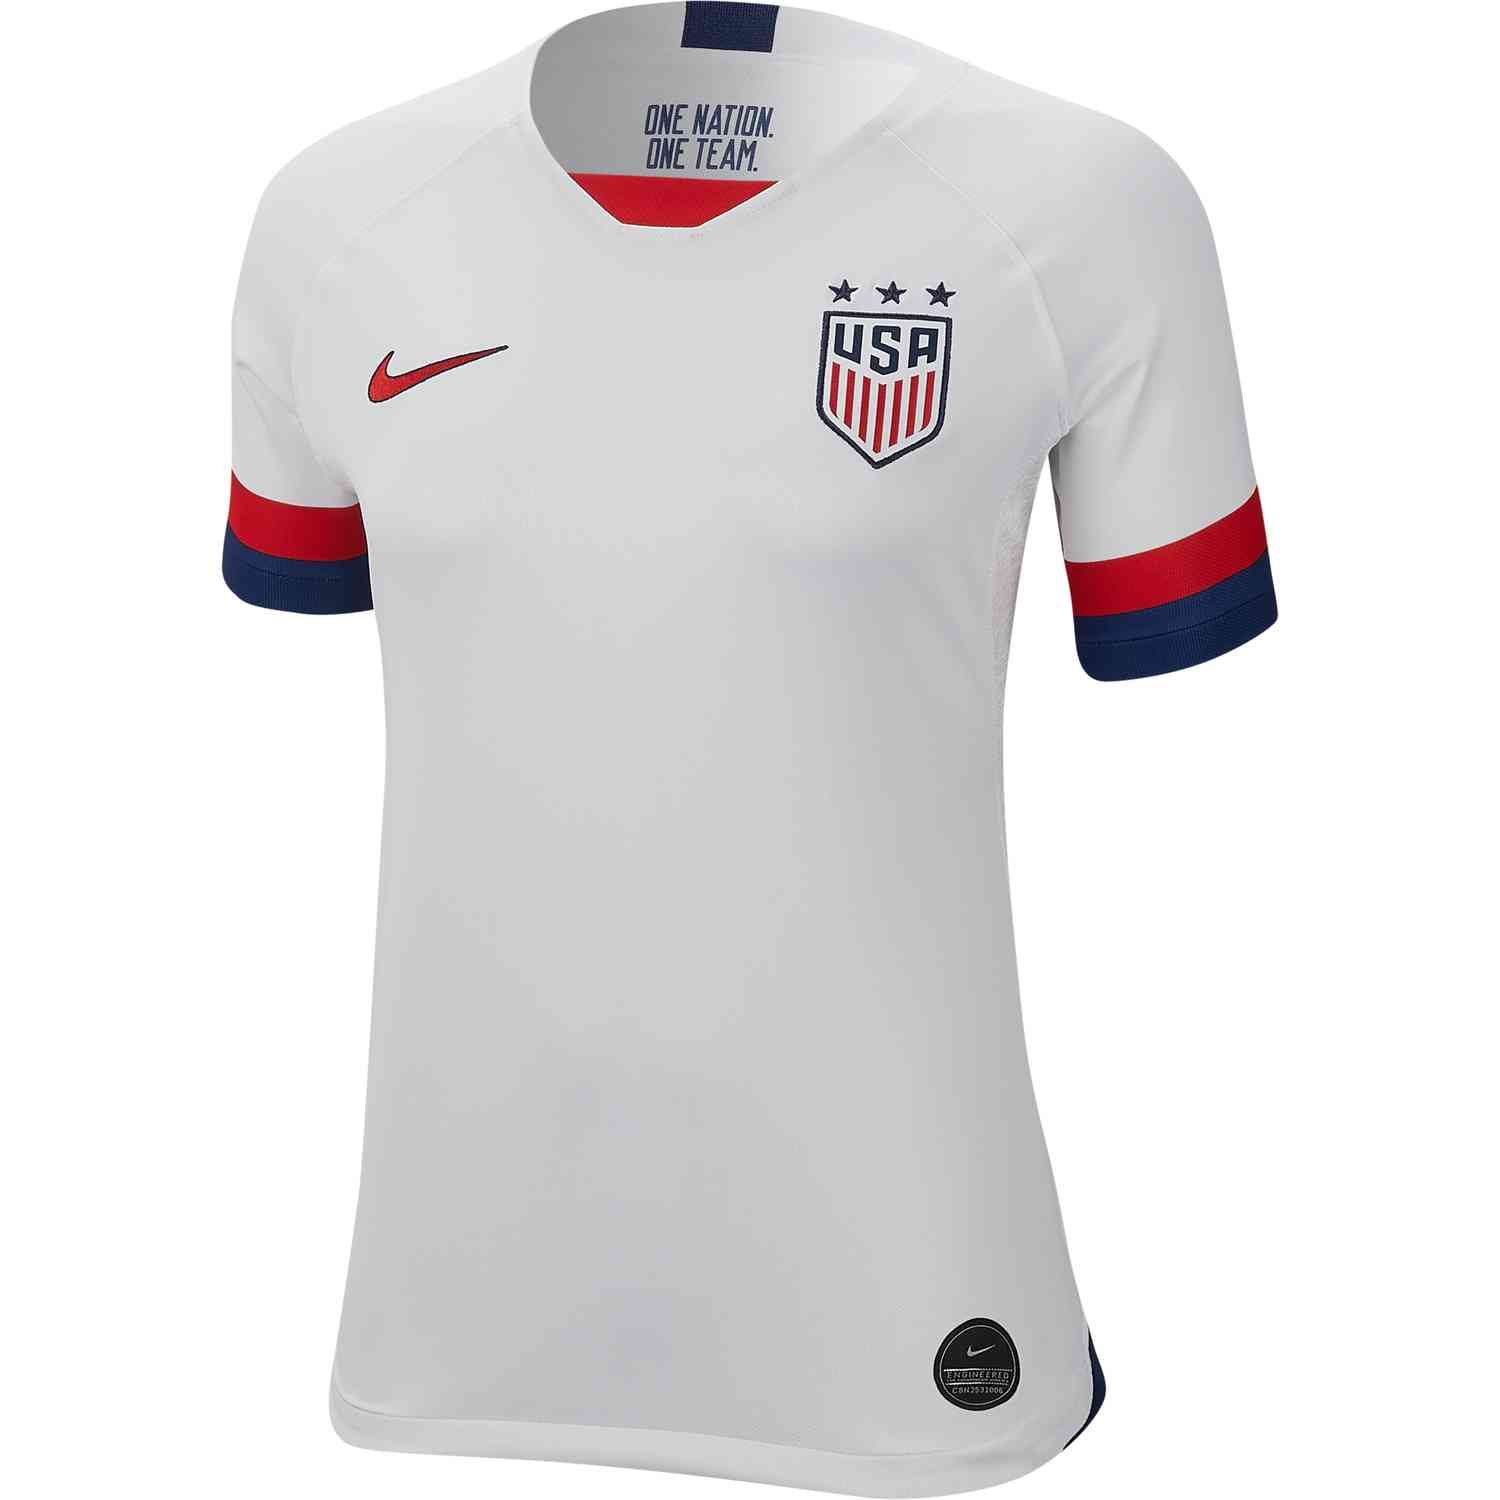 3cfdcfee26b Buy the 2019 Nike USWNT Home Jersey today from SoccerPro. Get it with fast  shipping and easy returns always. Original jerseys always guaranteed.